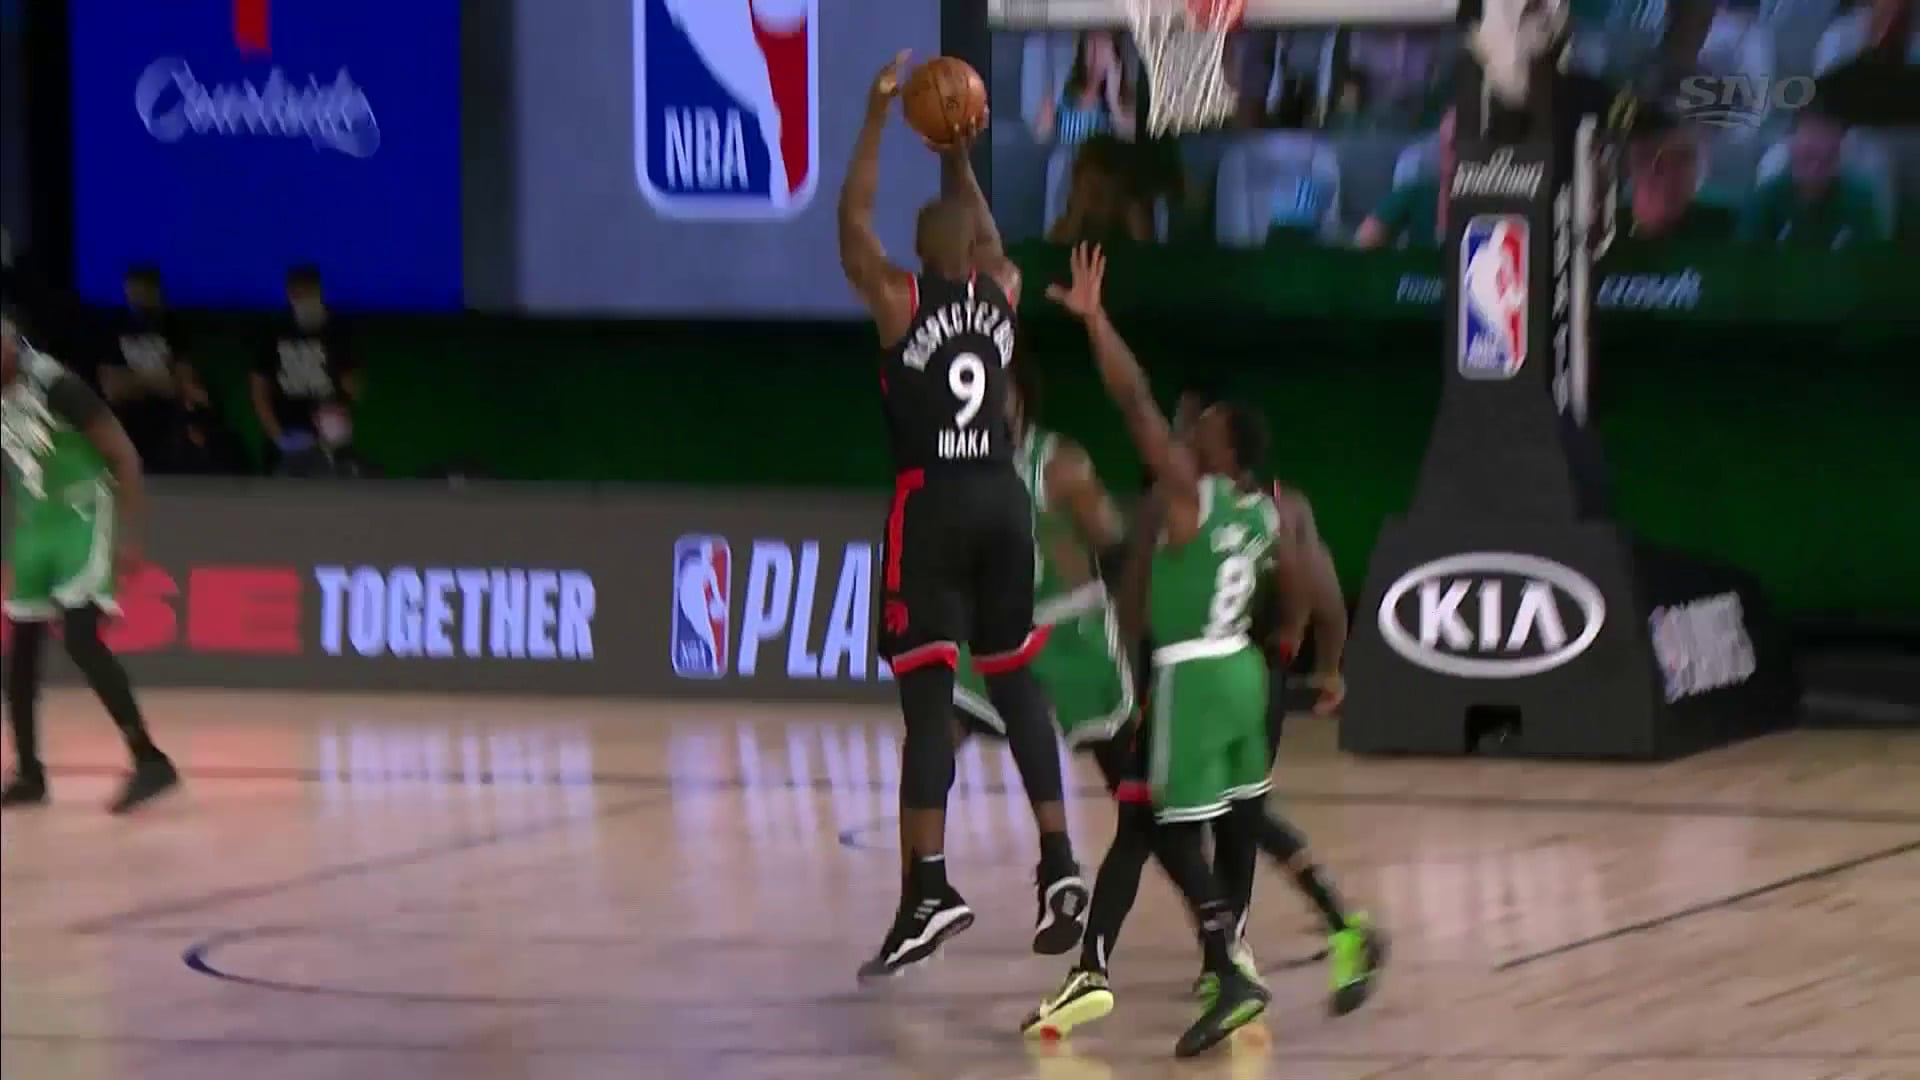 Raptors Highlights: Ibaka Three - September 9, 2020